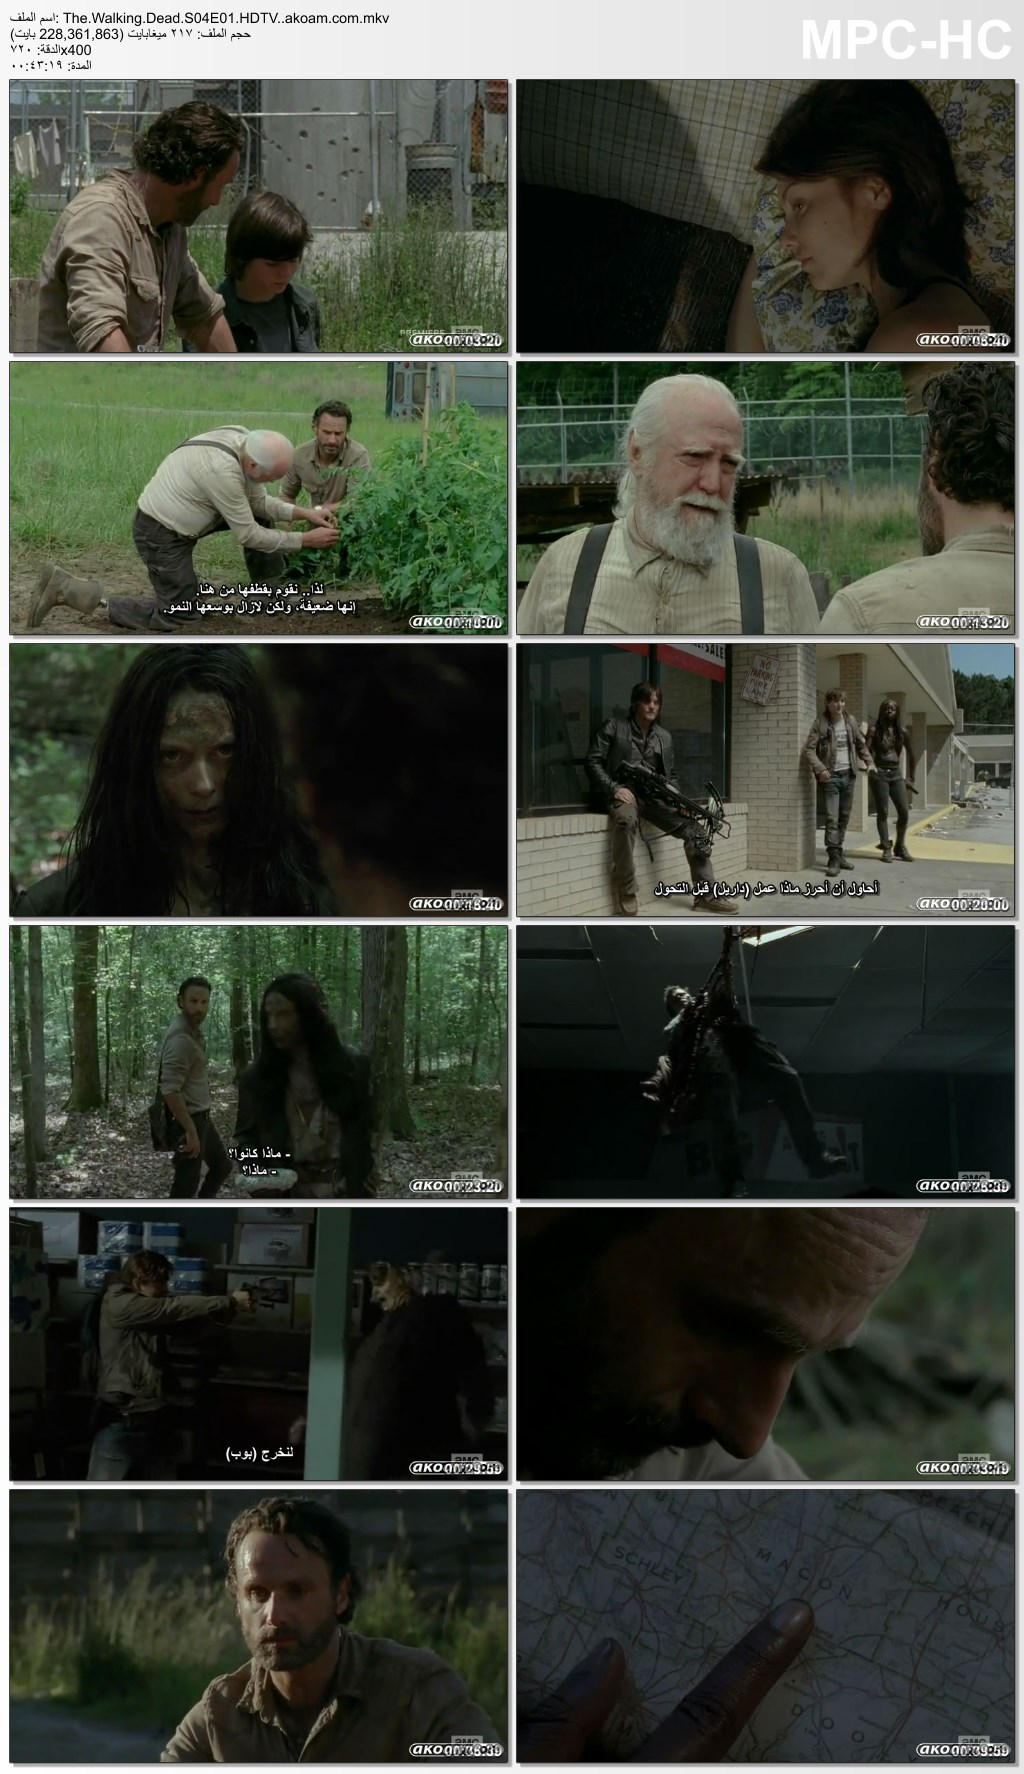 The Walking Dead,The Walking Dead 2013,The Walking Dead s 4,The Walking Dead s4